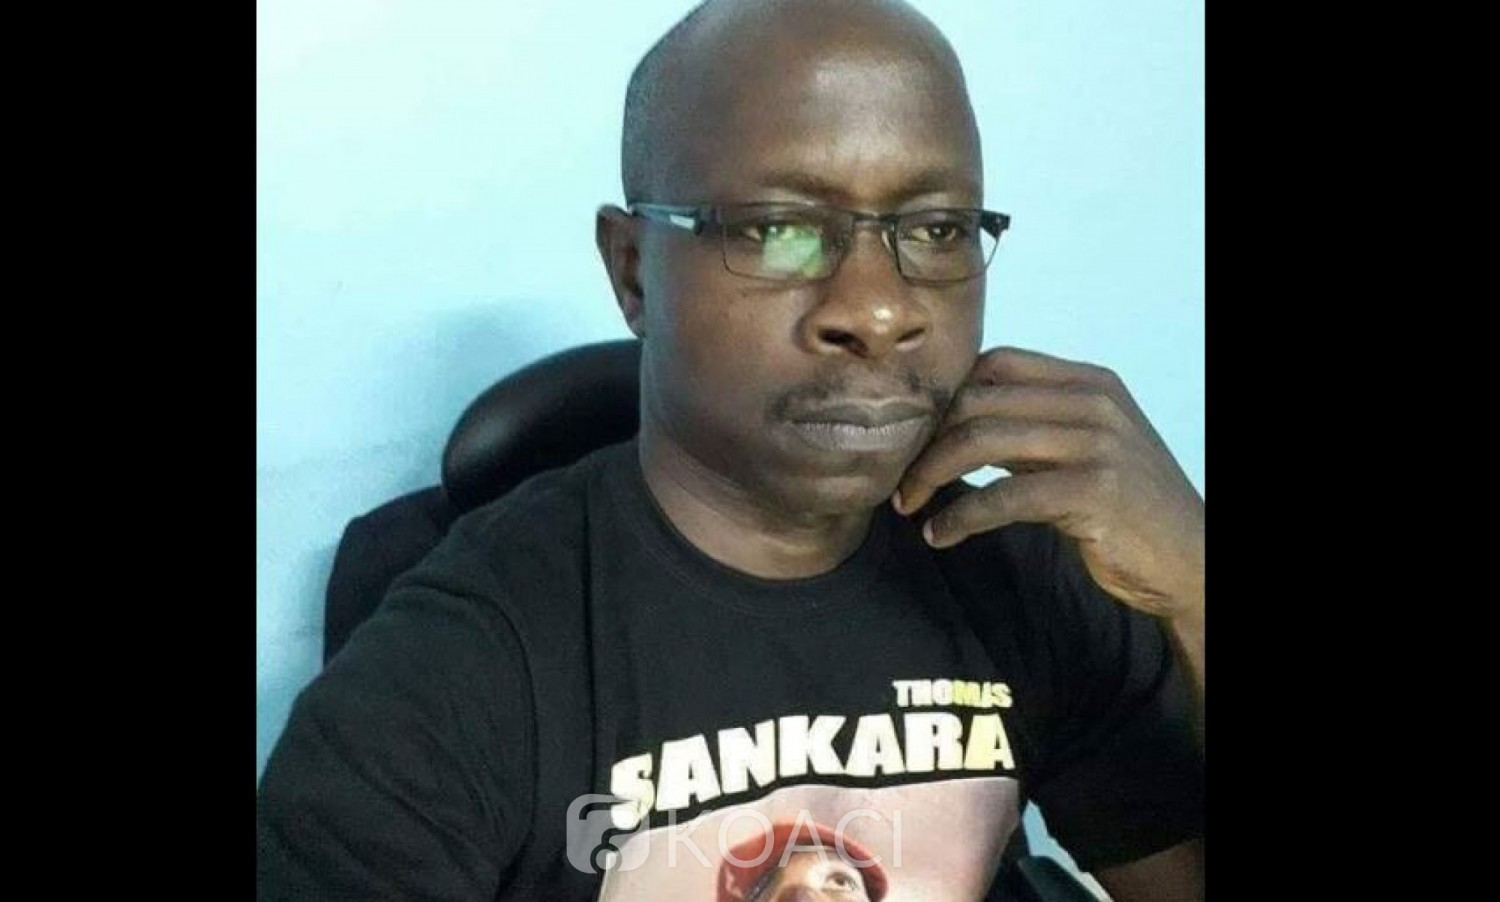 Burkina Faso: Un journaliste d'investigation victime d'actes d'intimidation